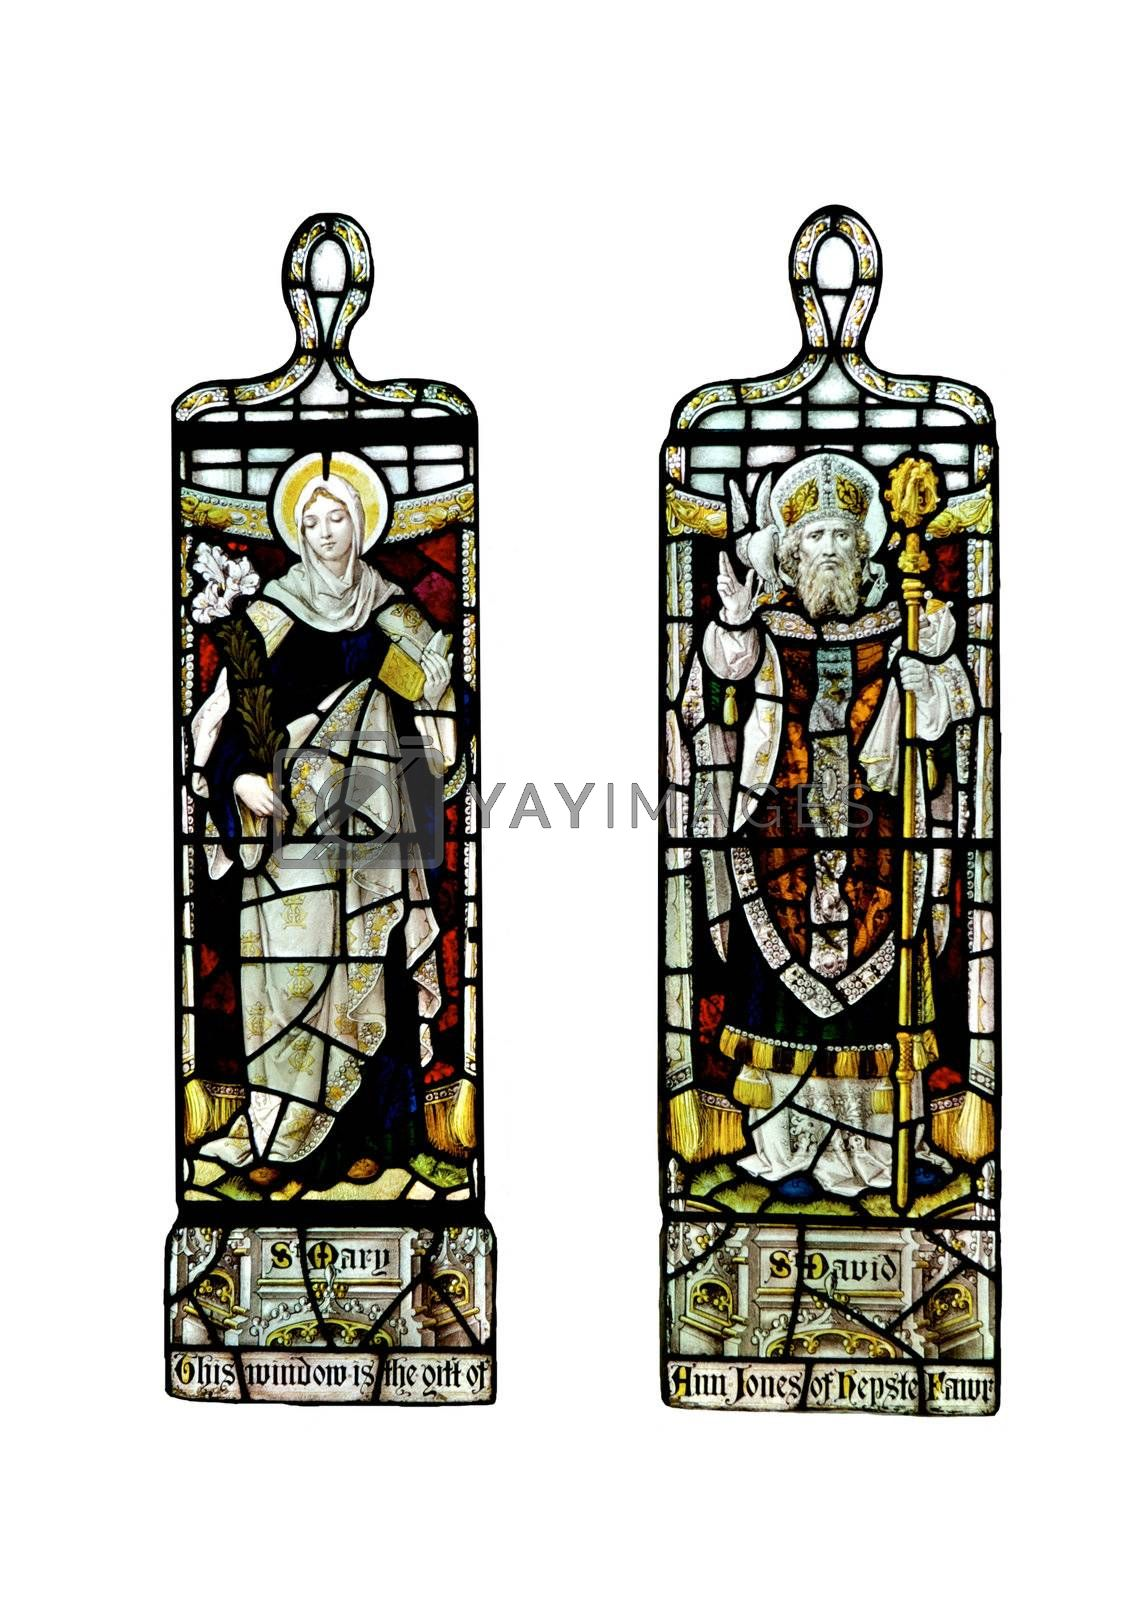 Religious stain glass windows with two panels, on a white background